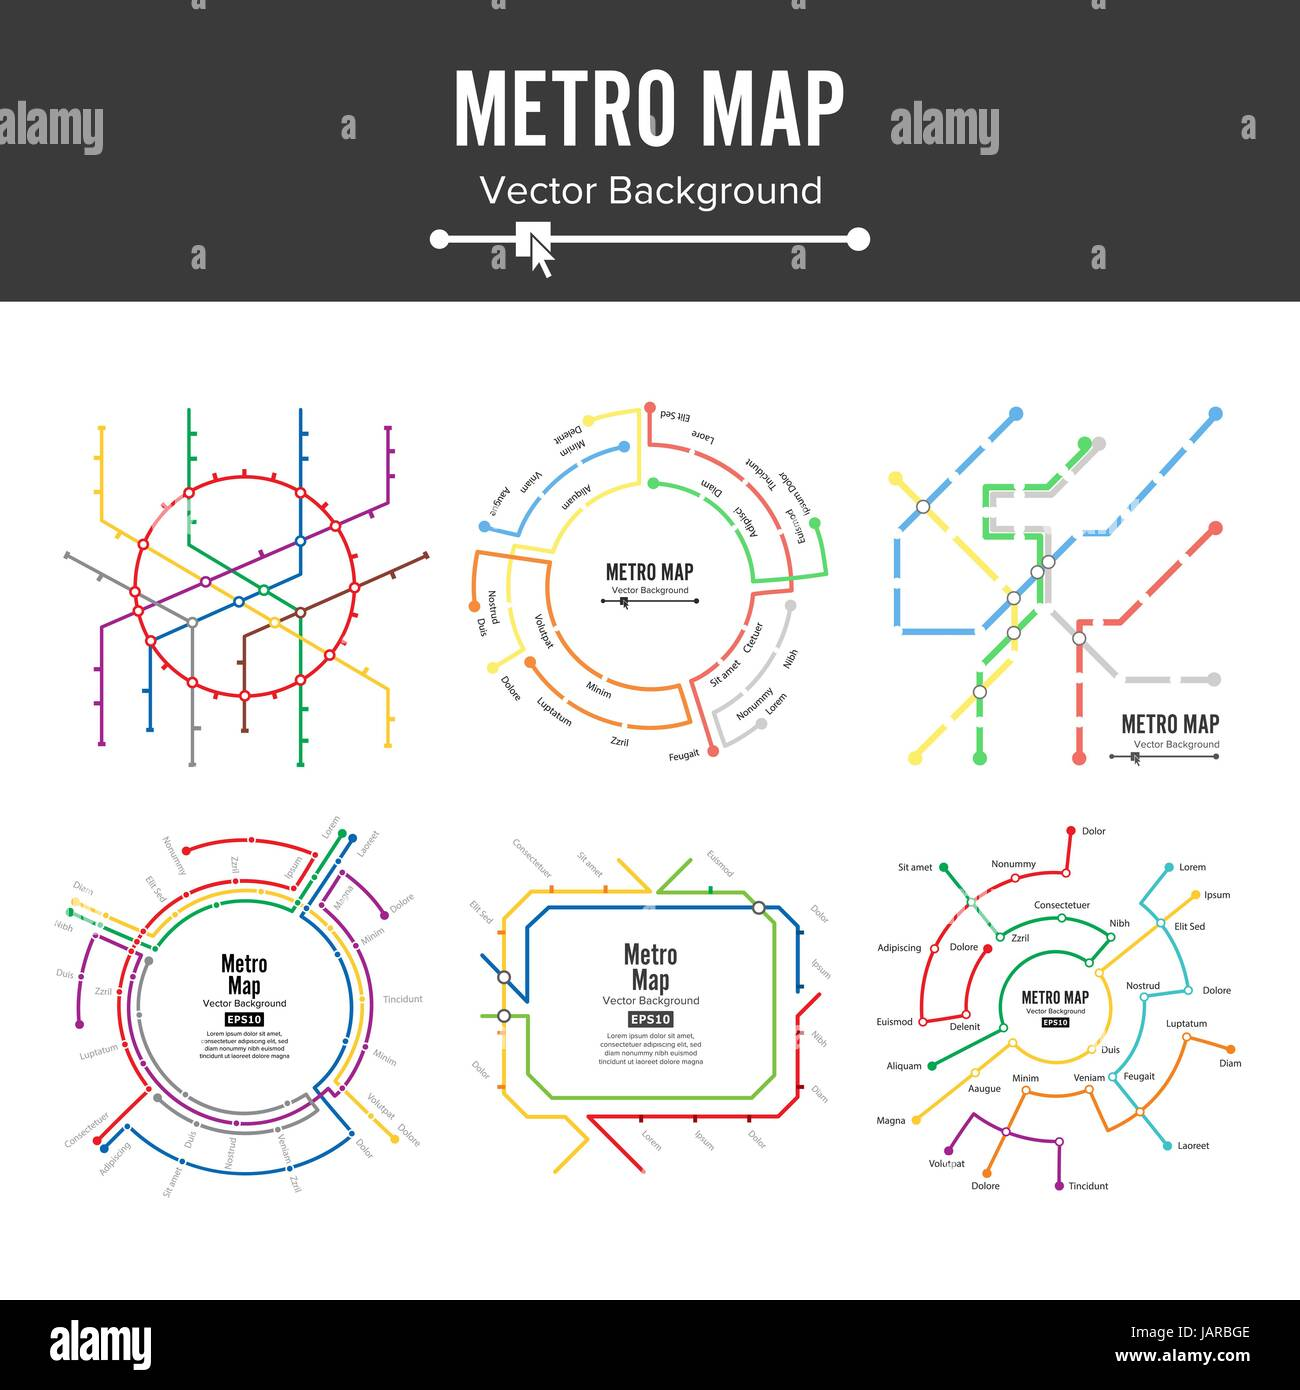 metro map vector plan map station metro and underground railway metro scheme illustration colorful background with stations